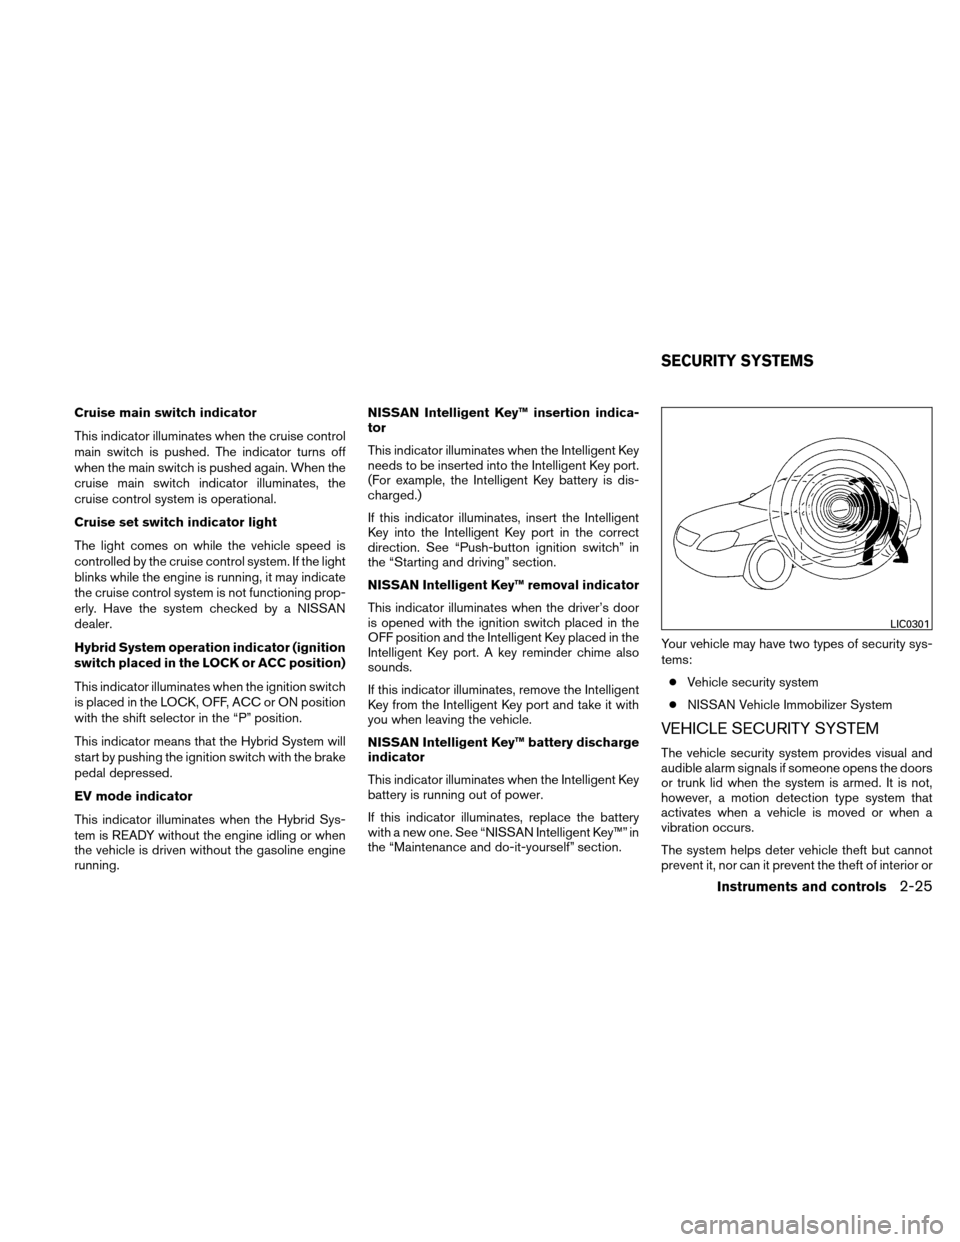 NISSAN ALTIMA HYBRID 2010 L32A / 4.G Owners Manual, Page 106